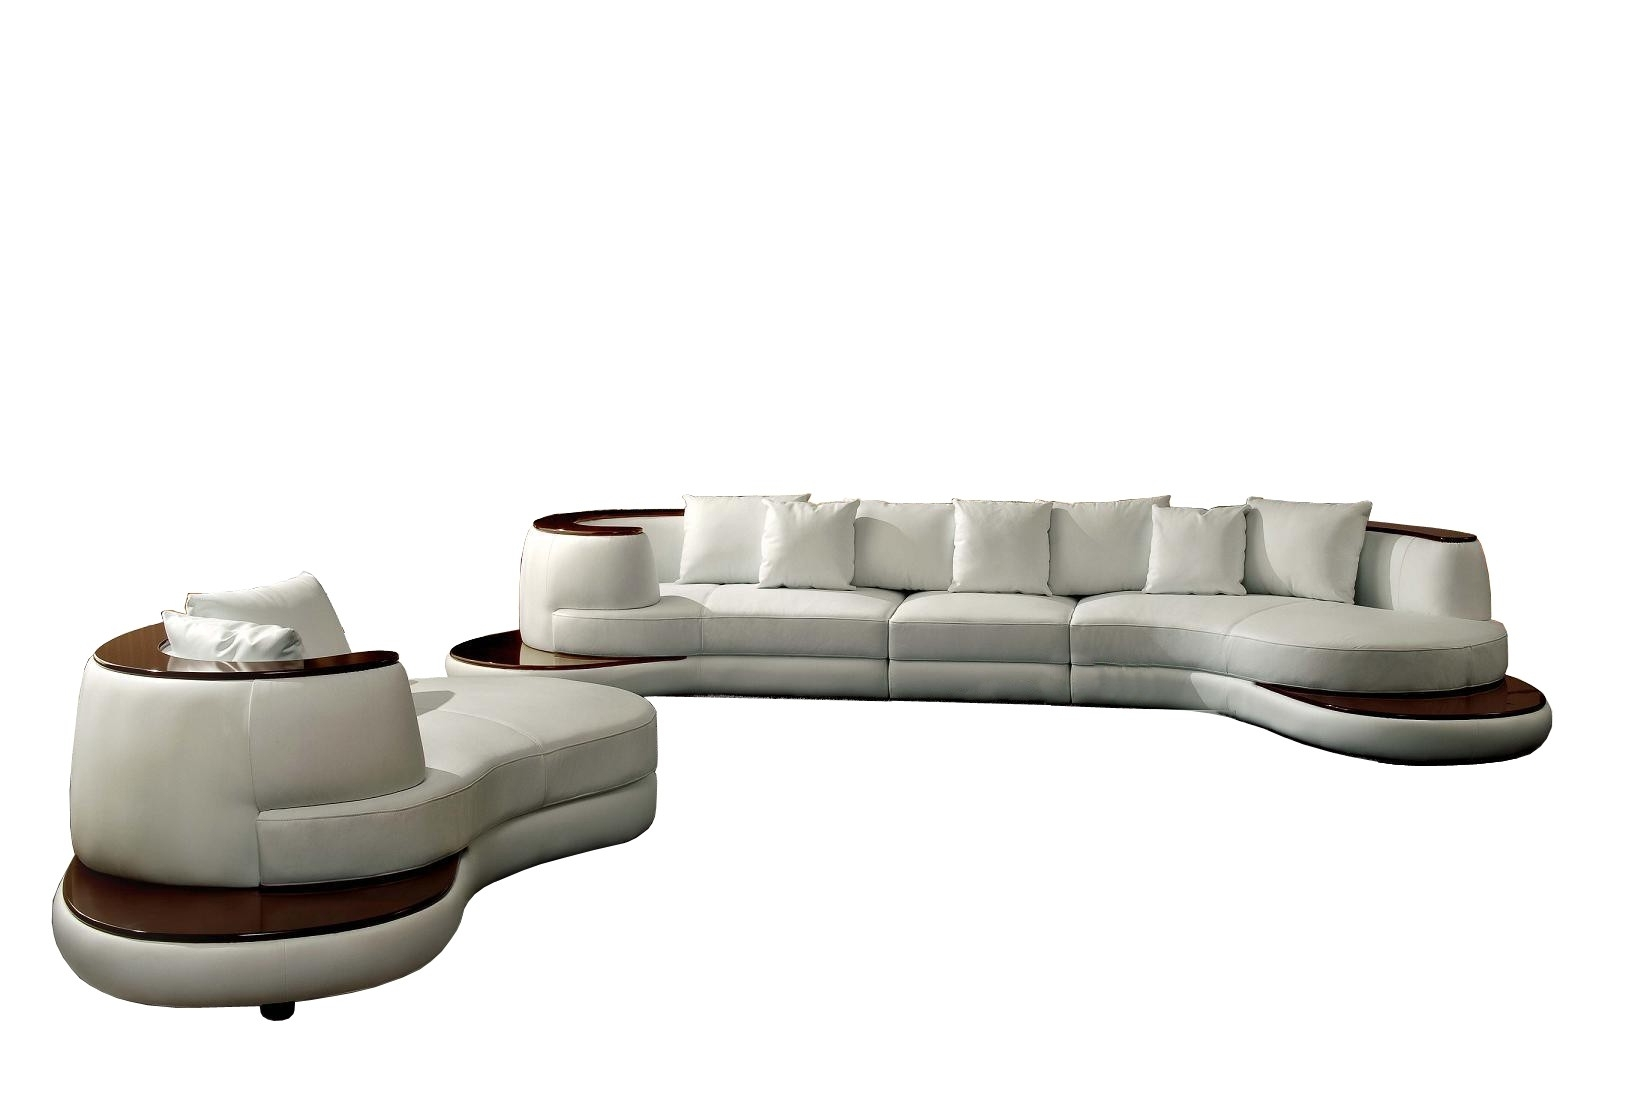 Rounded Corner Sectional Sofas Intended For 2019 Divani Casa Rodus Leather Sofa